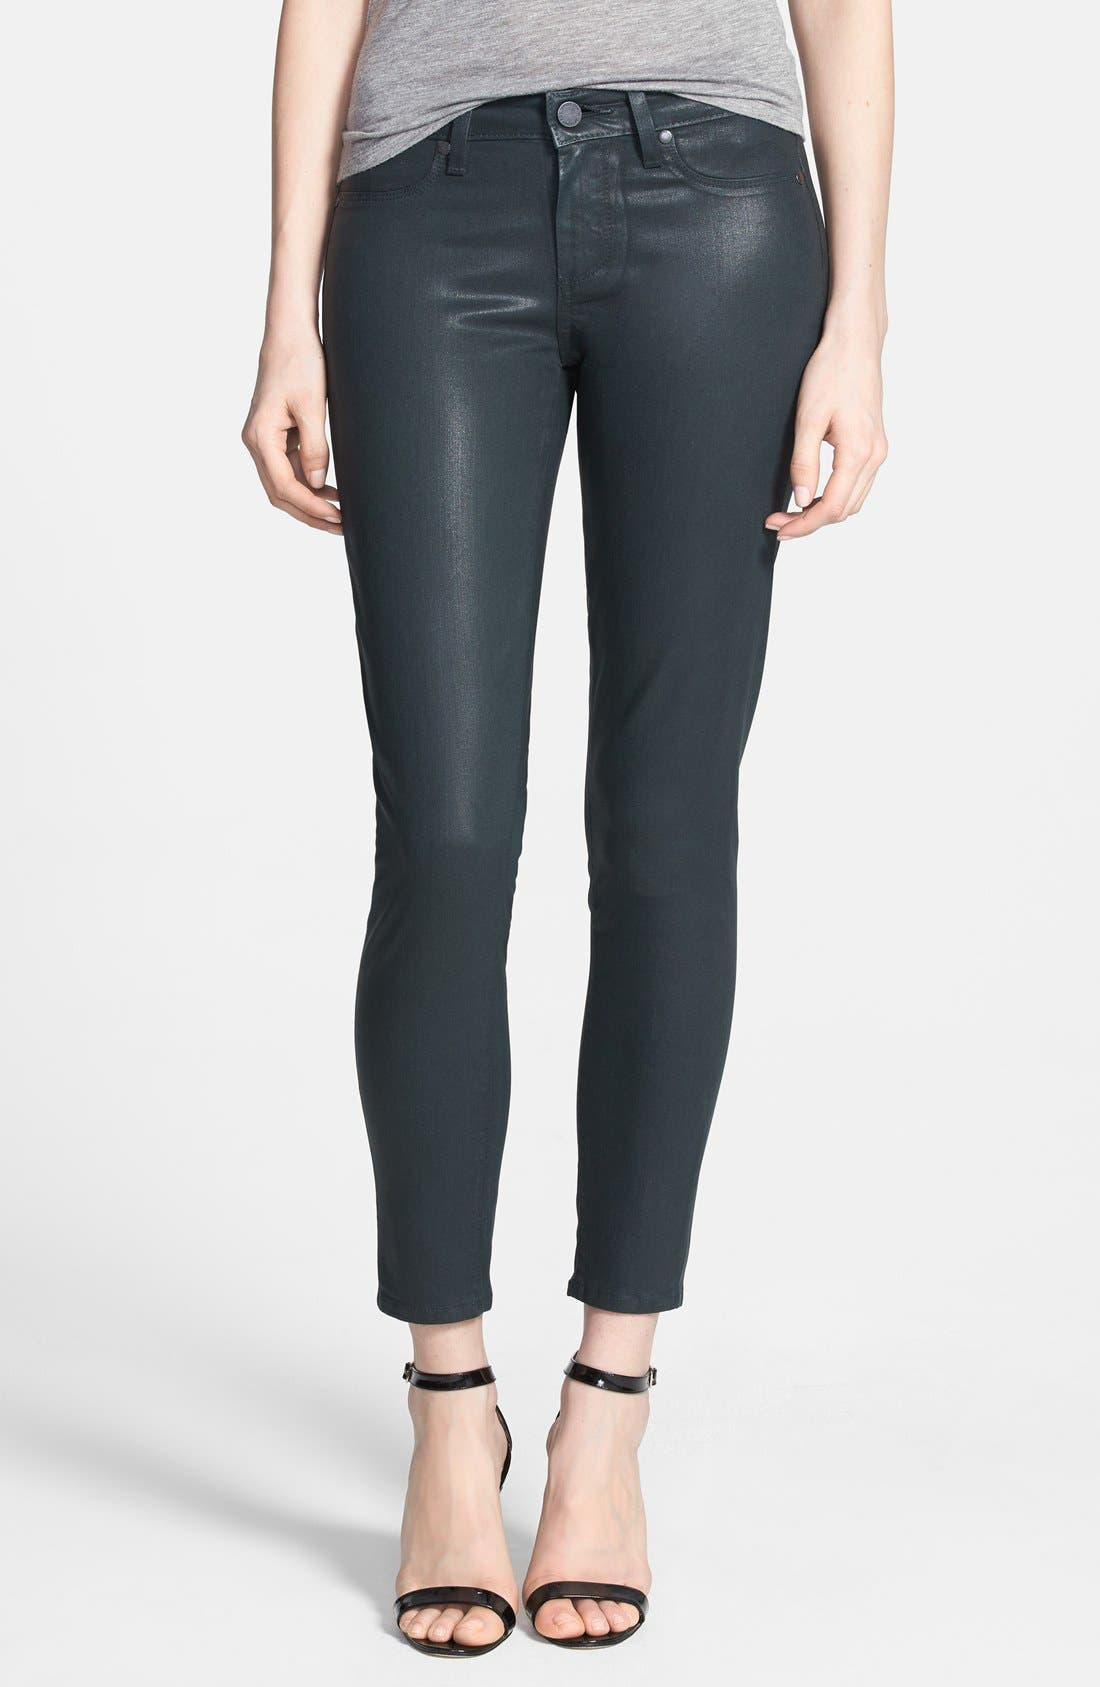 Alternate Image 1 Selected - Paige Denim 'Verdugo' Coated Skinny Ankle Jeans (Evergreen Silk)